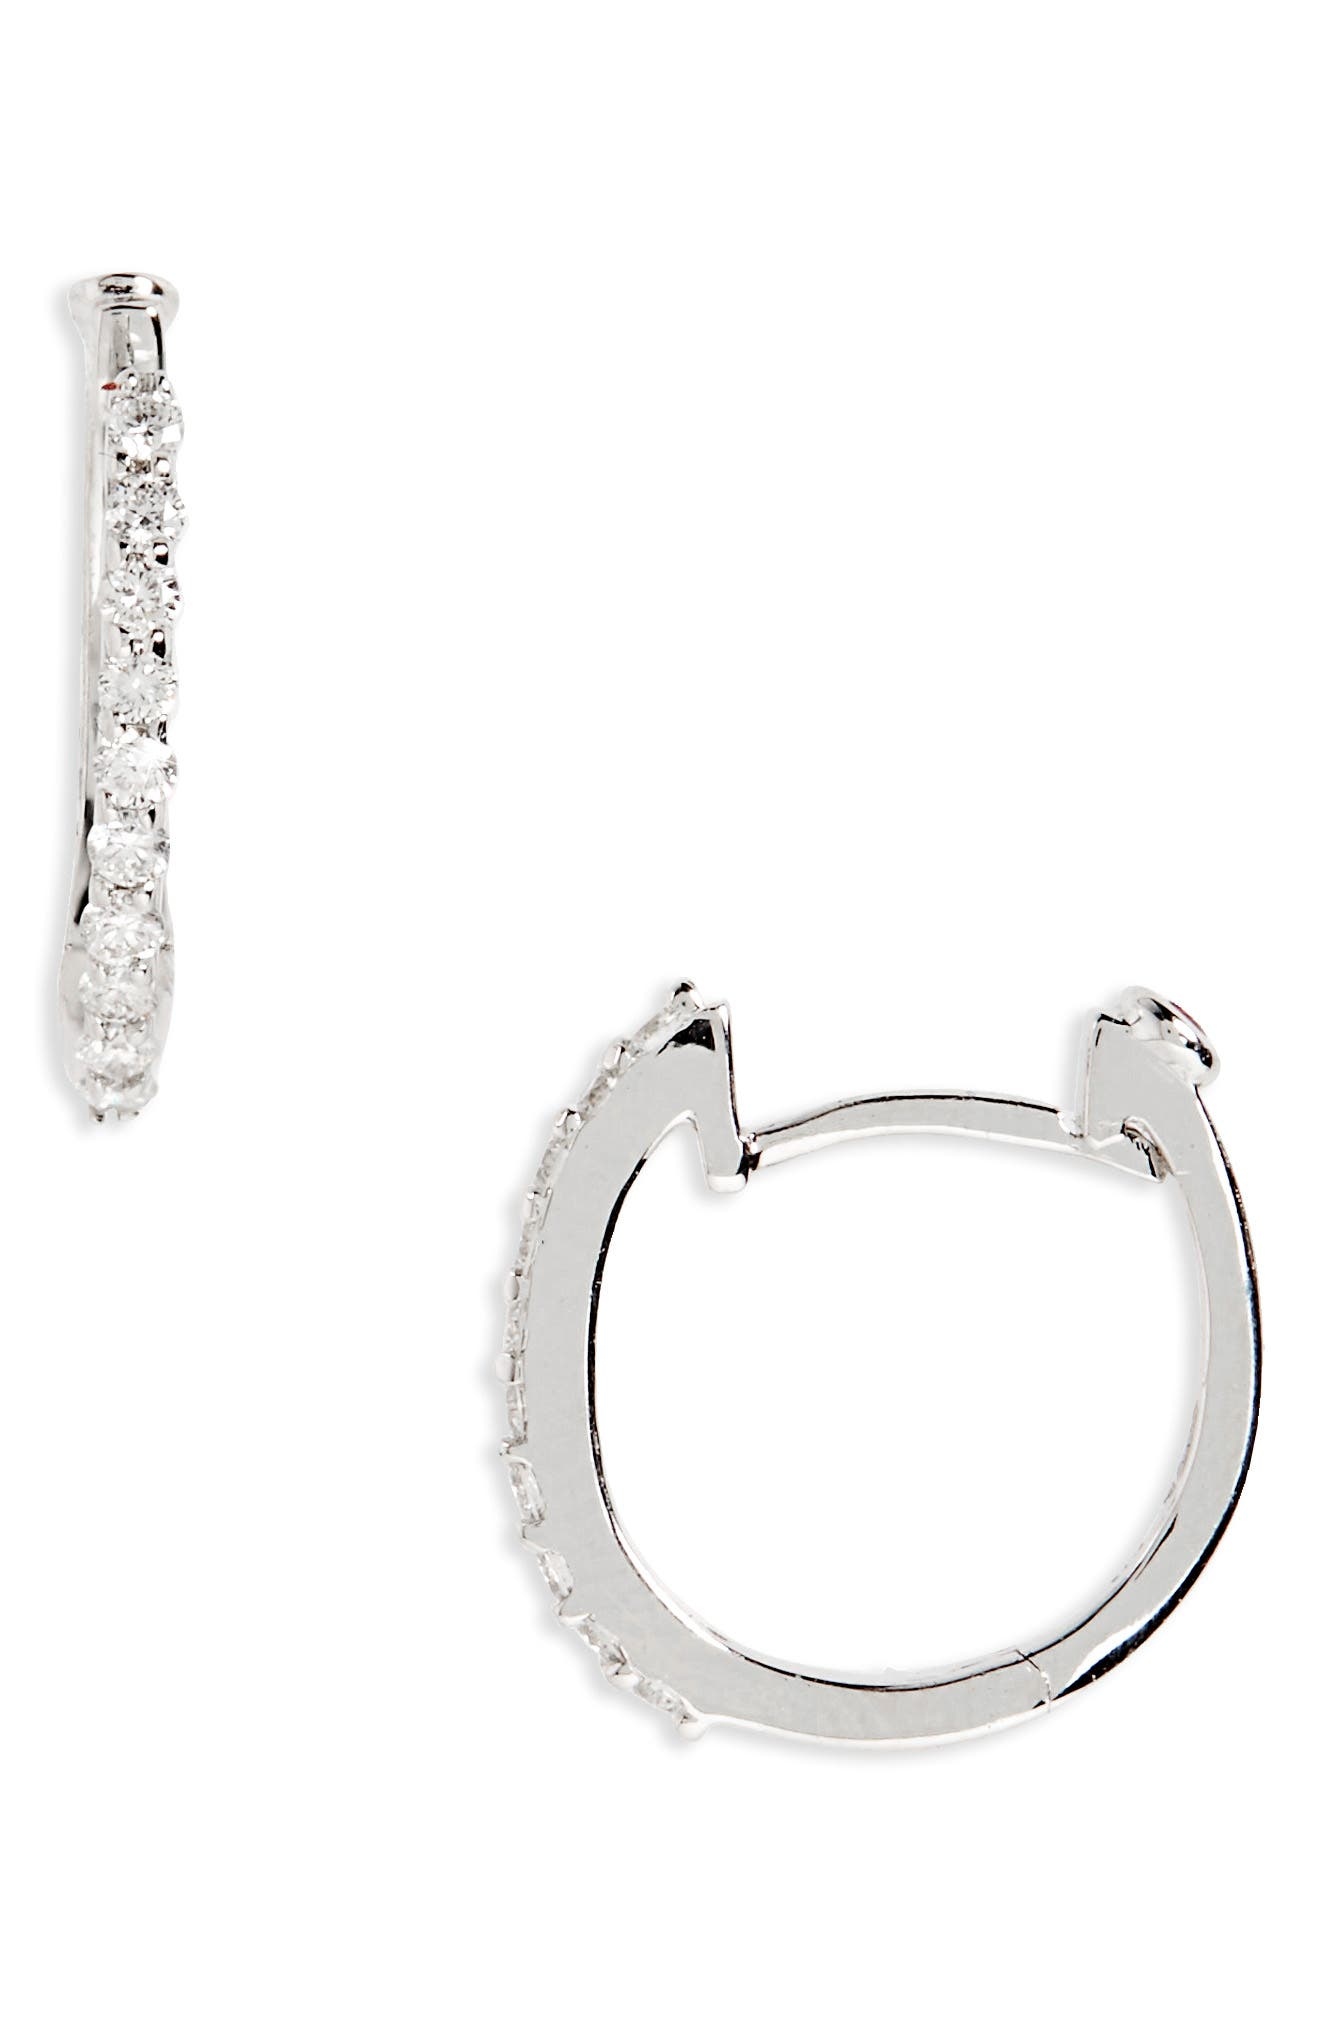 Main Image - Roberto Coin Small Diamond Hoop Earrings